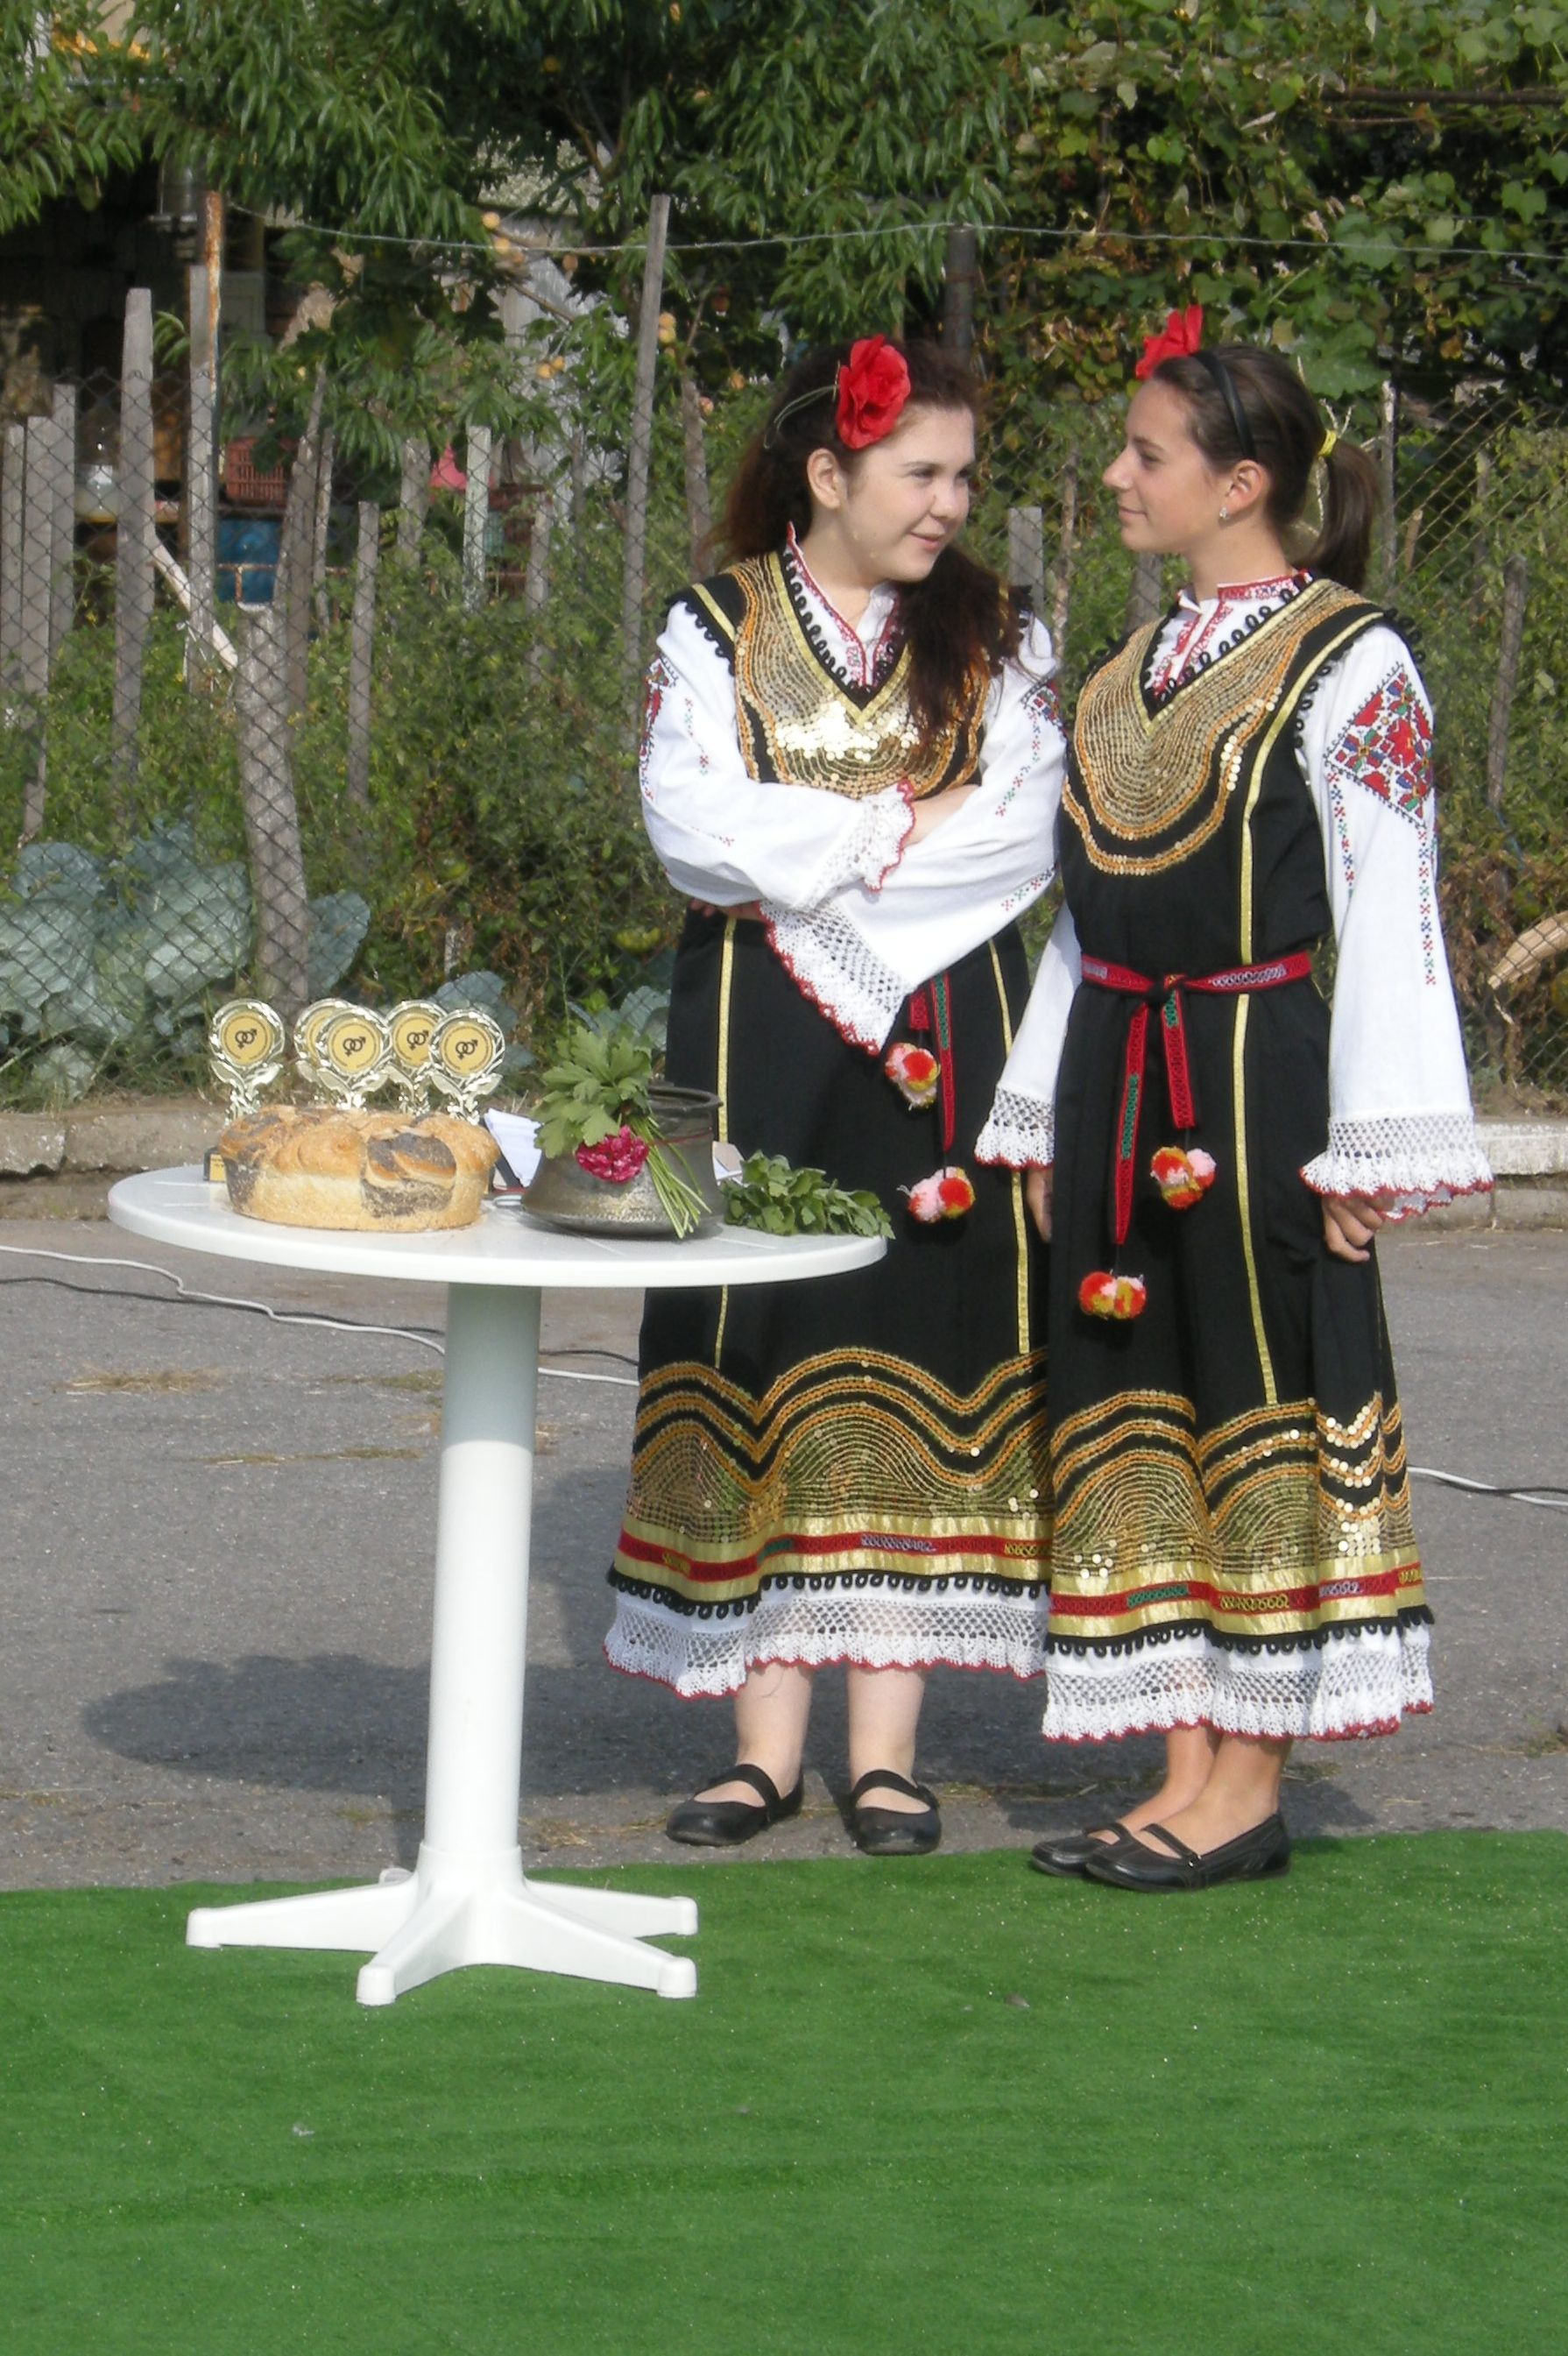 Bulgaria Girls http://commons.wikimedia.org/wiki/File:Bulgarian_Girls_01.jpg